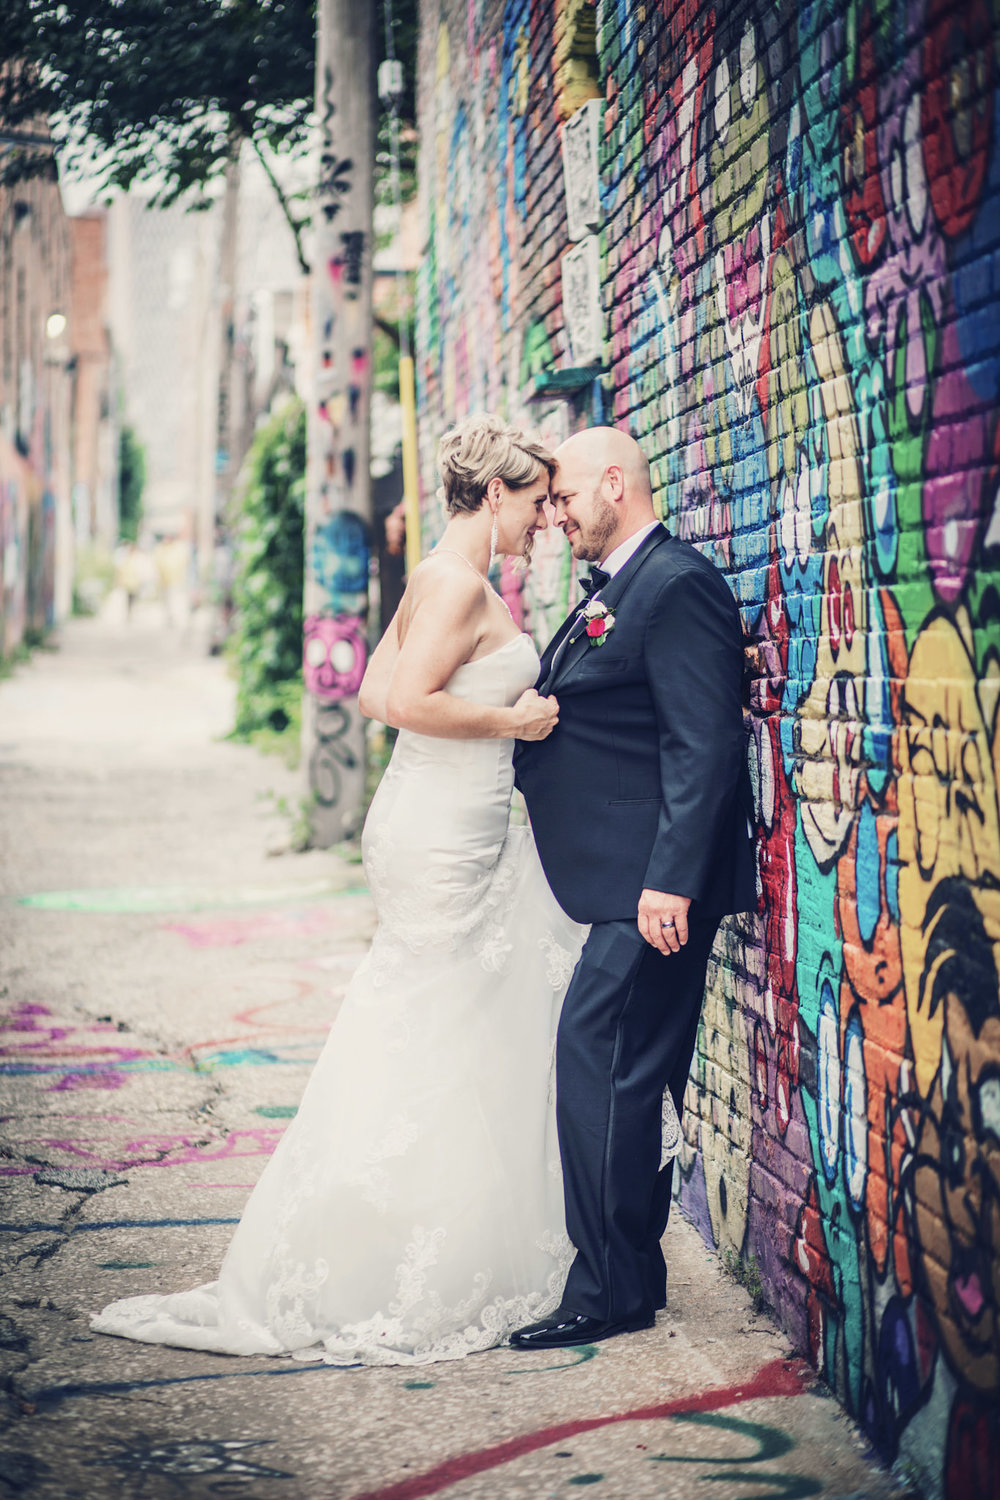 Kansas+City-Small+Wedding-Elope_Intimate_Ceremony_Melanie+David-18.jpg